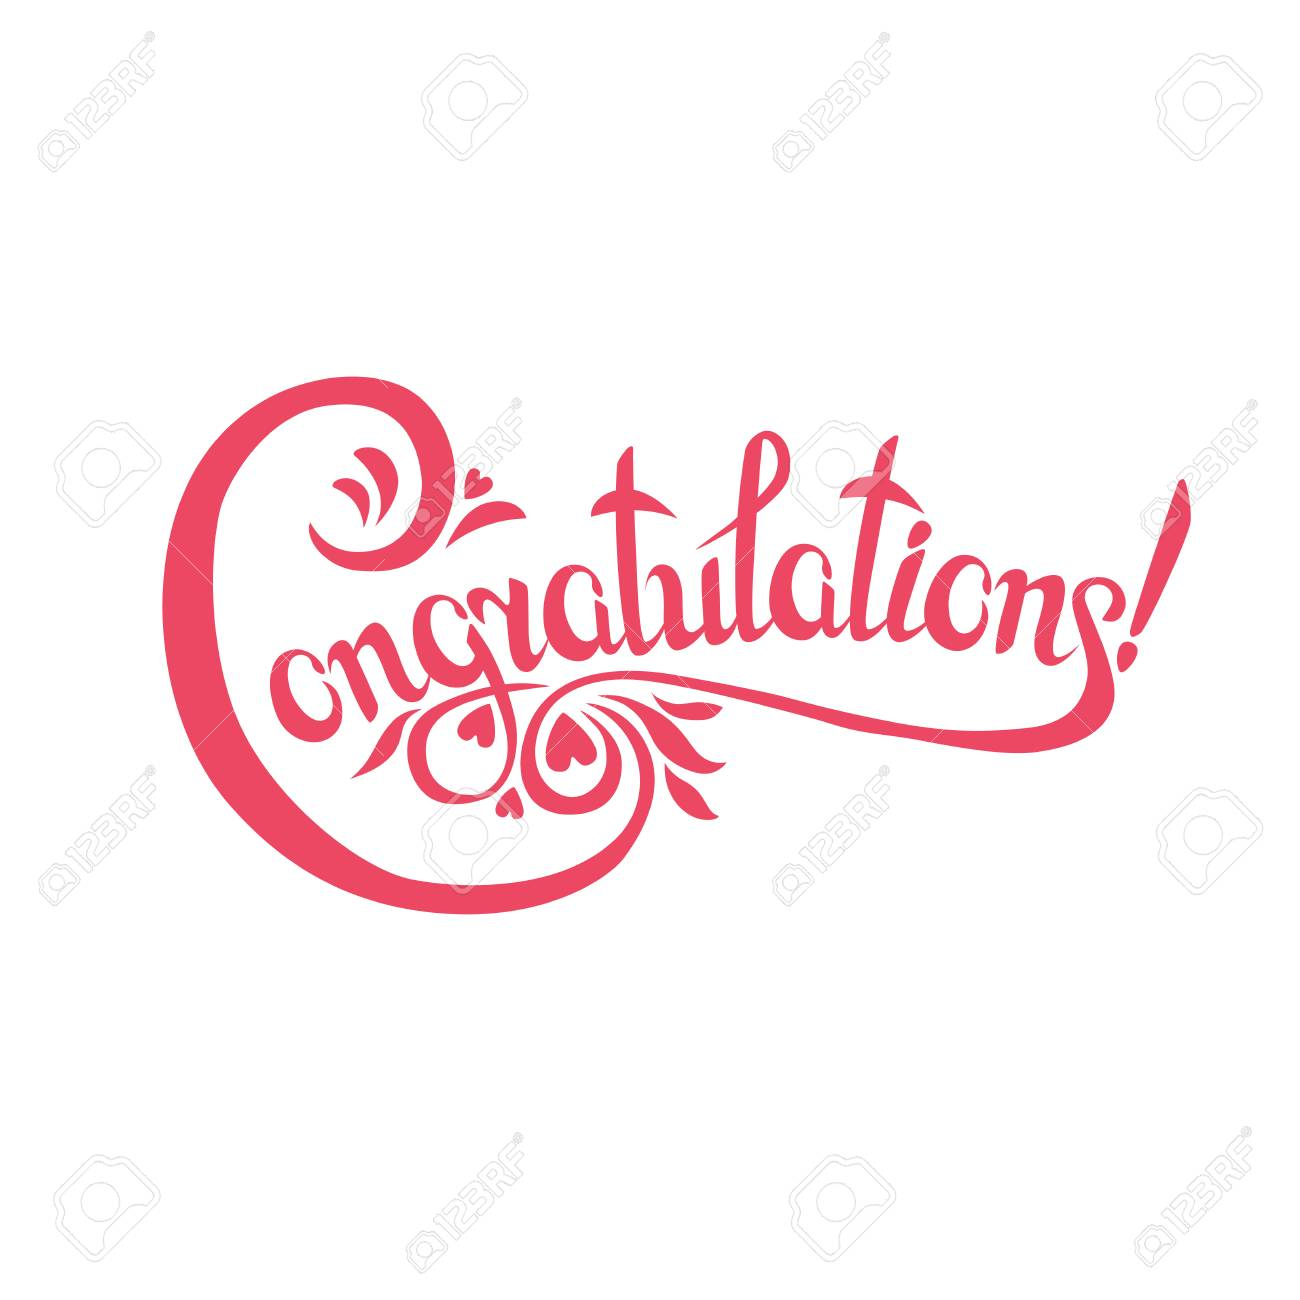 congratulations sign hand drawn lettering greeting card with